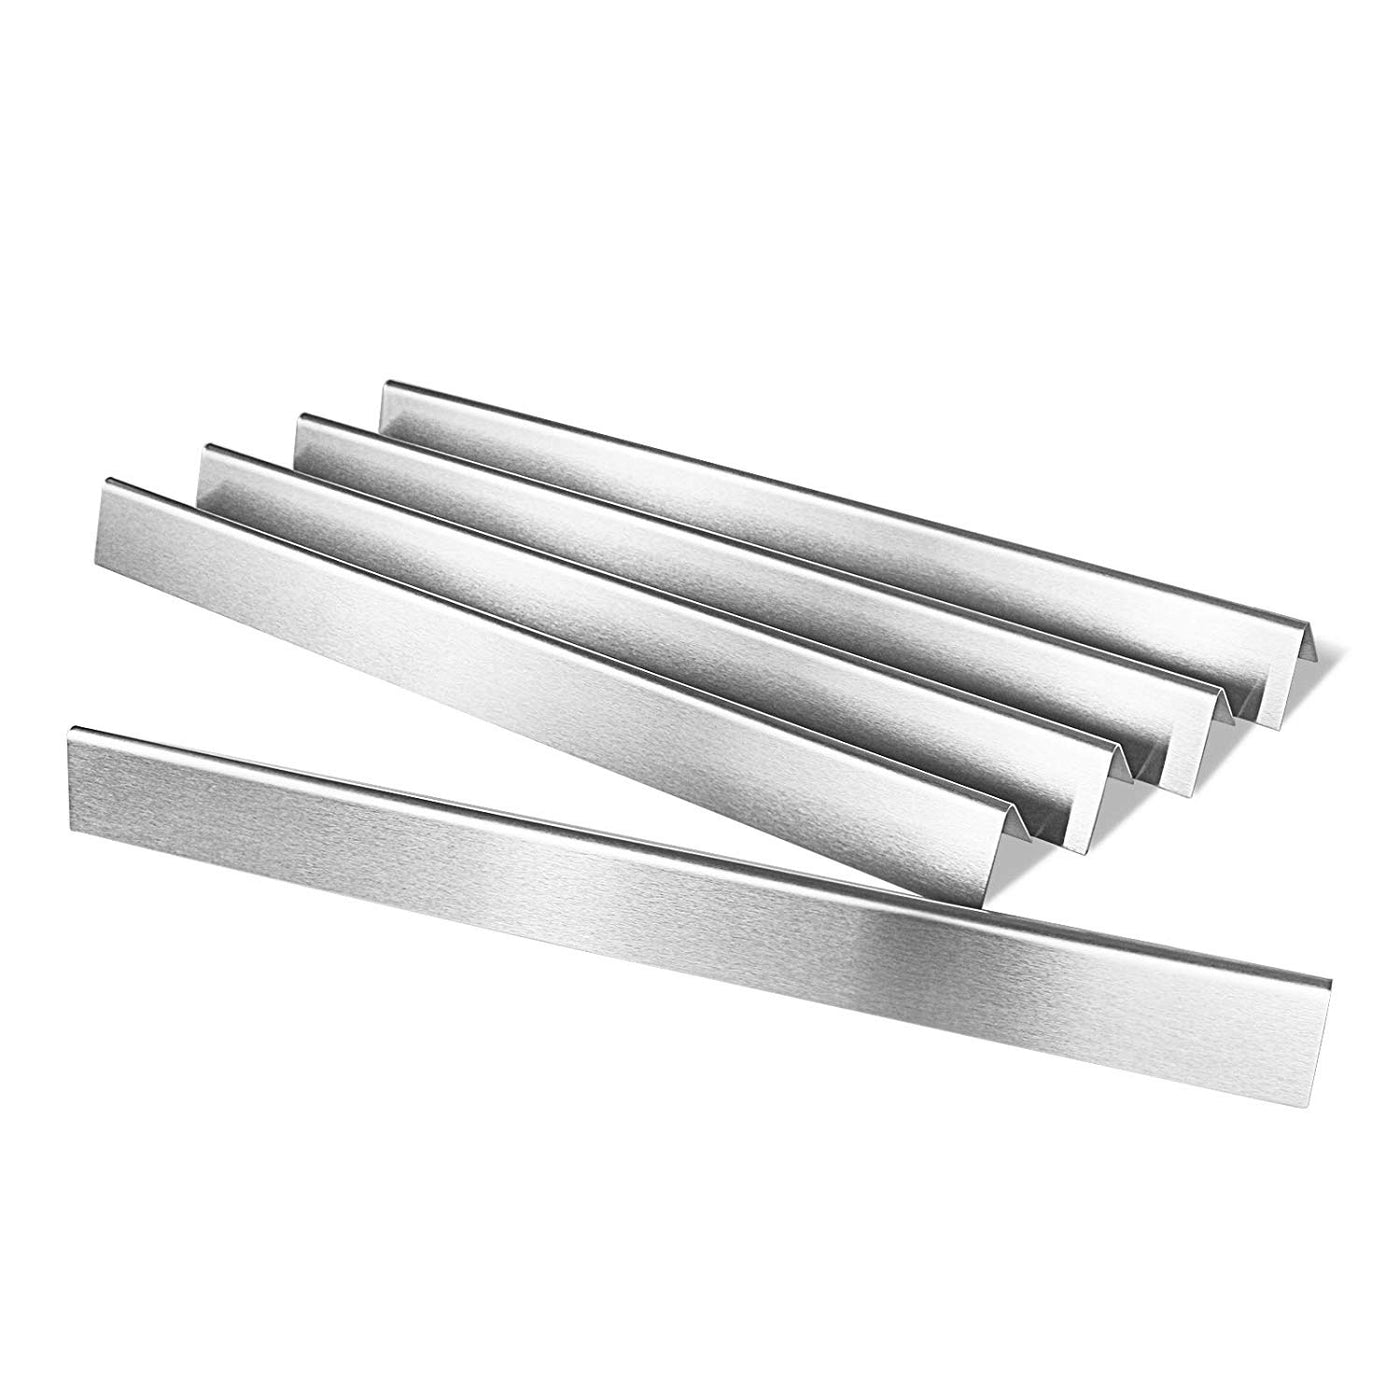 Set of 5 Flavorizer Bars Replacement Stainless Steel Heat Plates Weber BBQ Grill